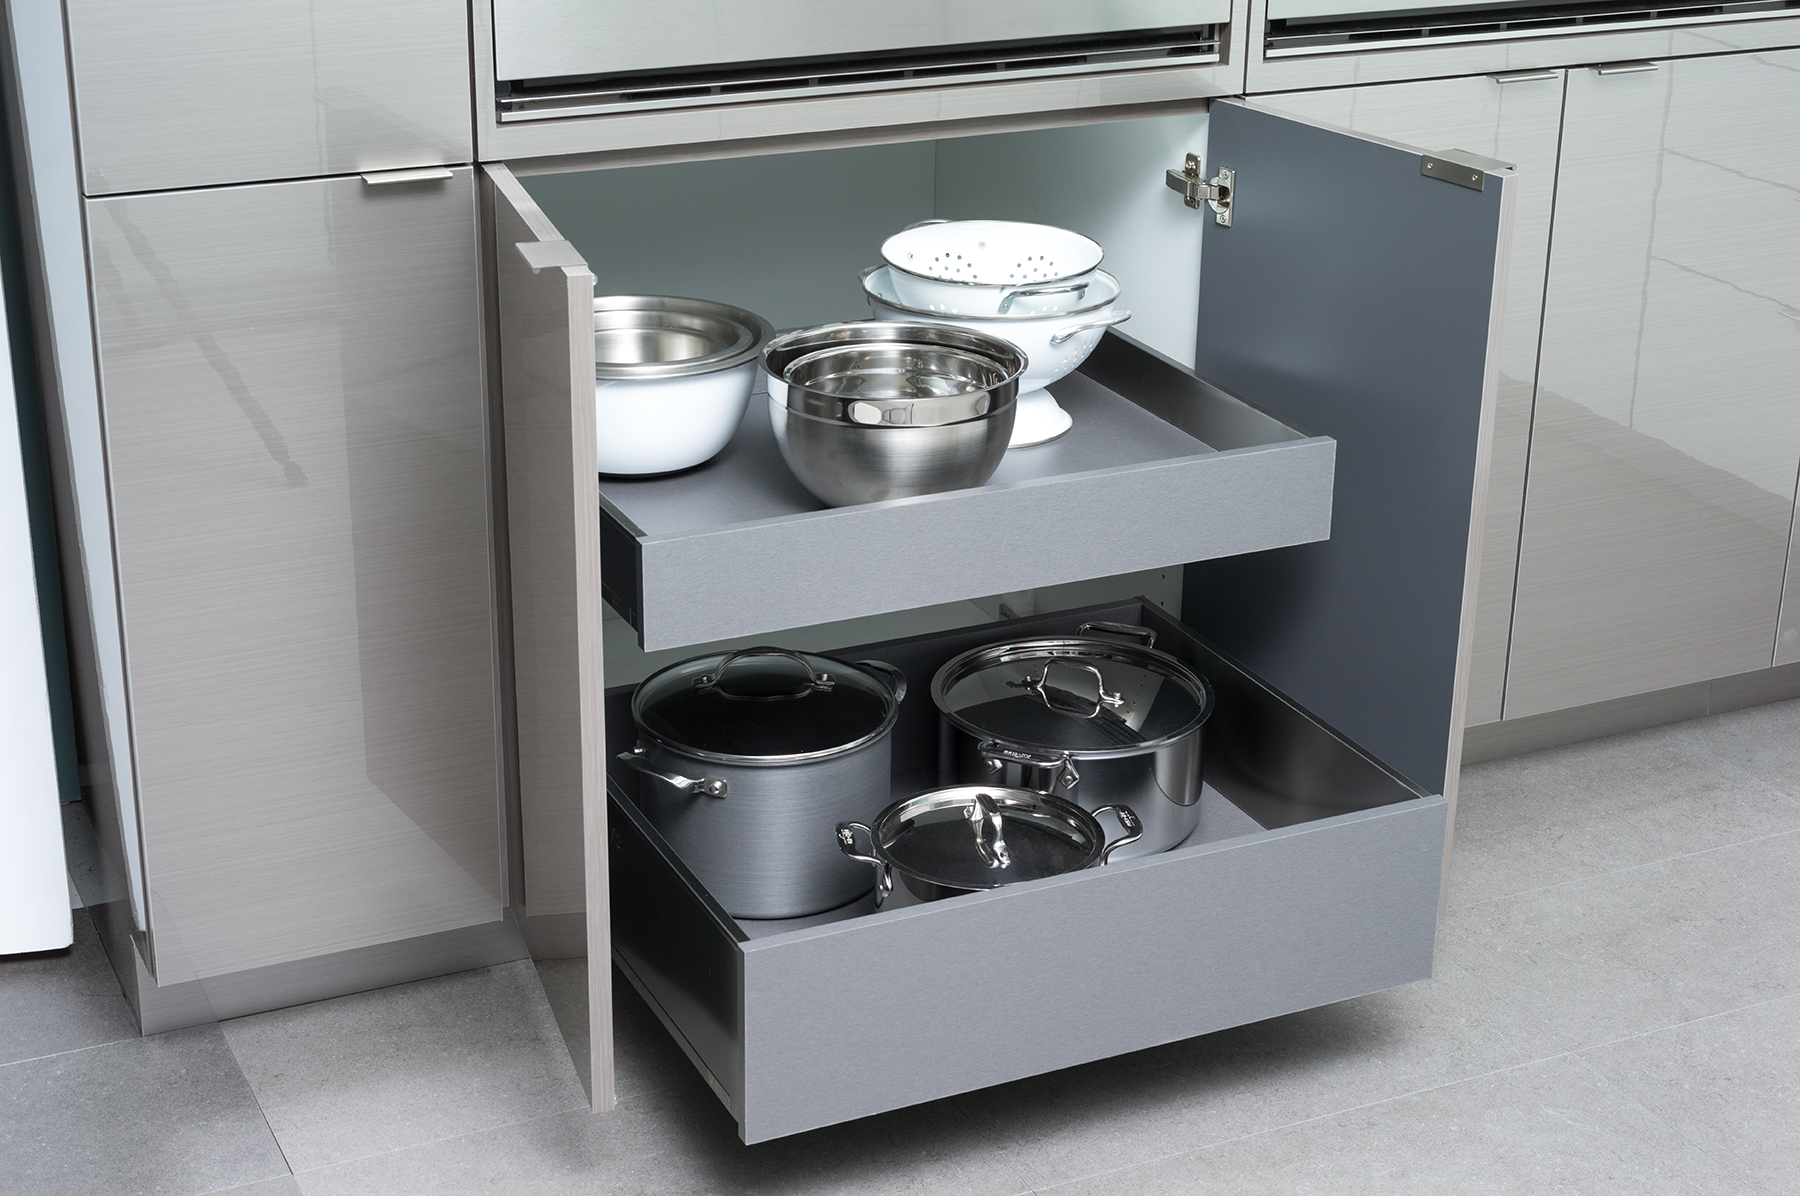 Stainless Steel Roll-Out Shelves